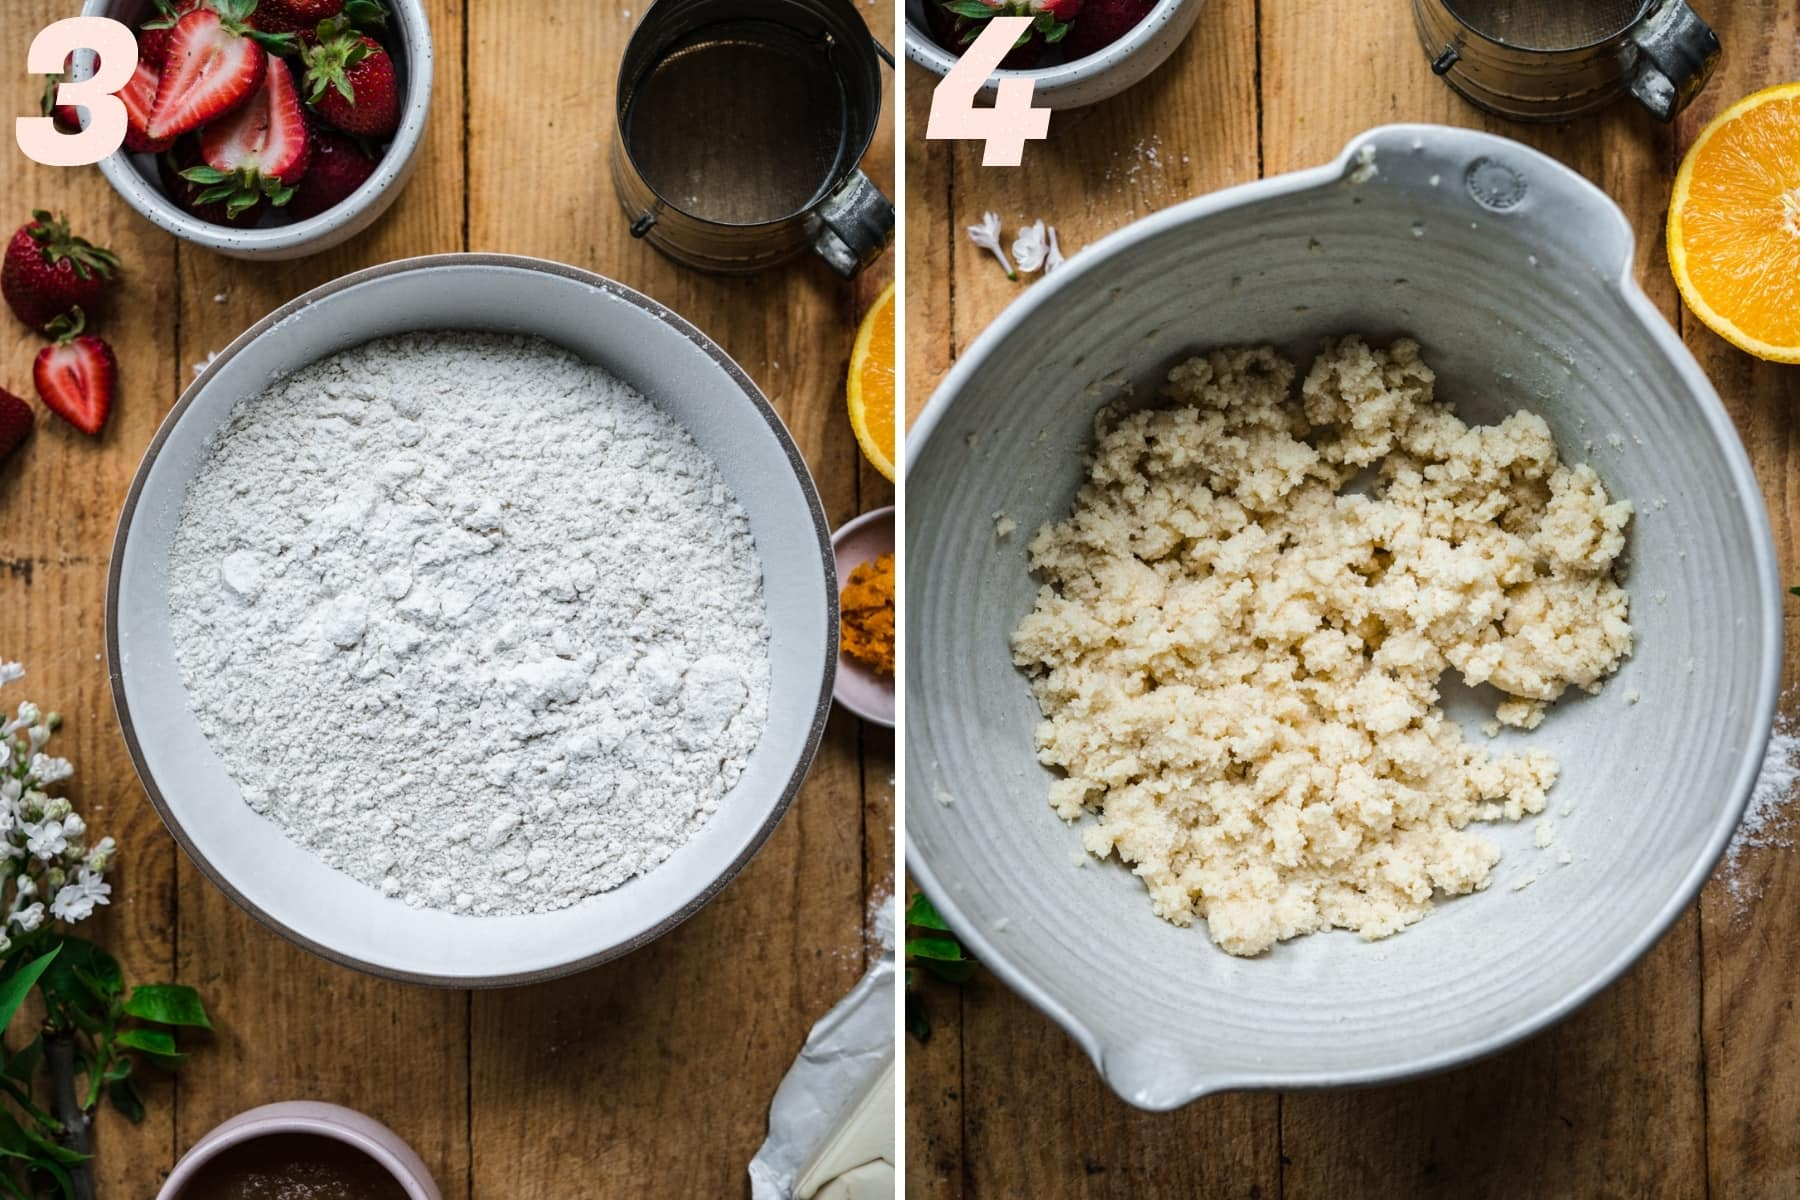 on the left: dry ingredients mixed together in a bowl. on the right: butter and sugar in mixing bowl.